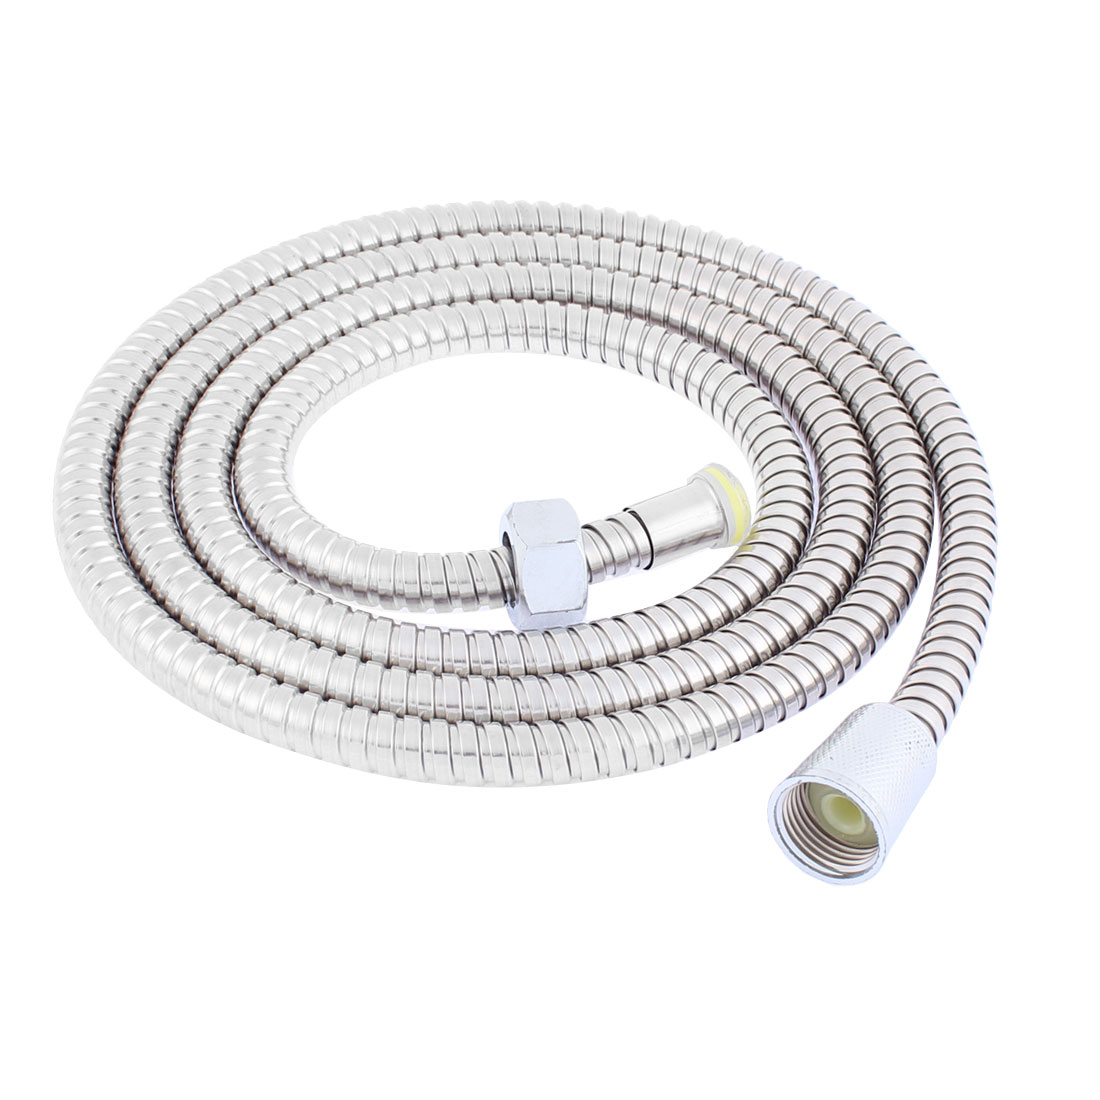 Water Heater Shower Head 1/2 BSP Female Thread Spiral Hose Pipe 2m Length